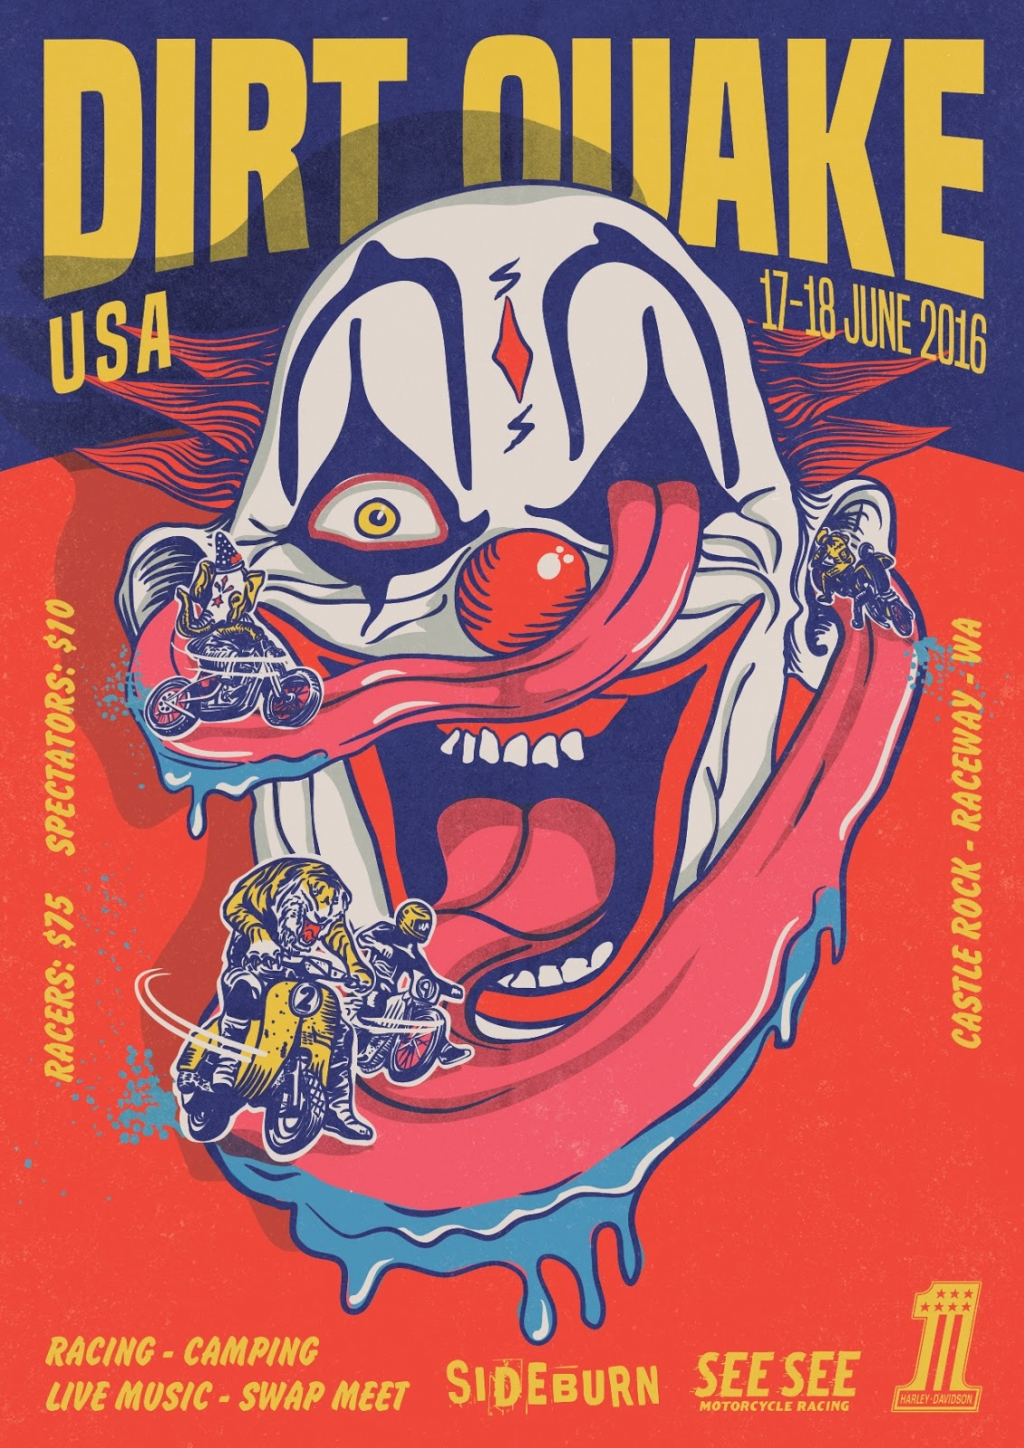 THE DIRT QUAKE USA 2016